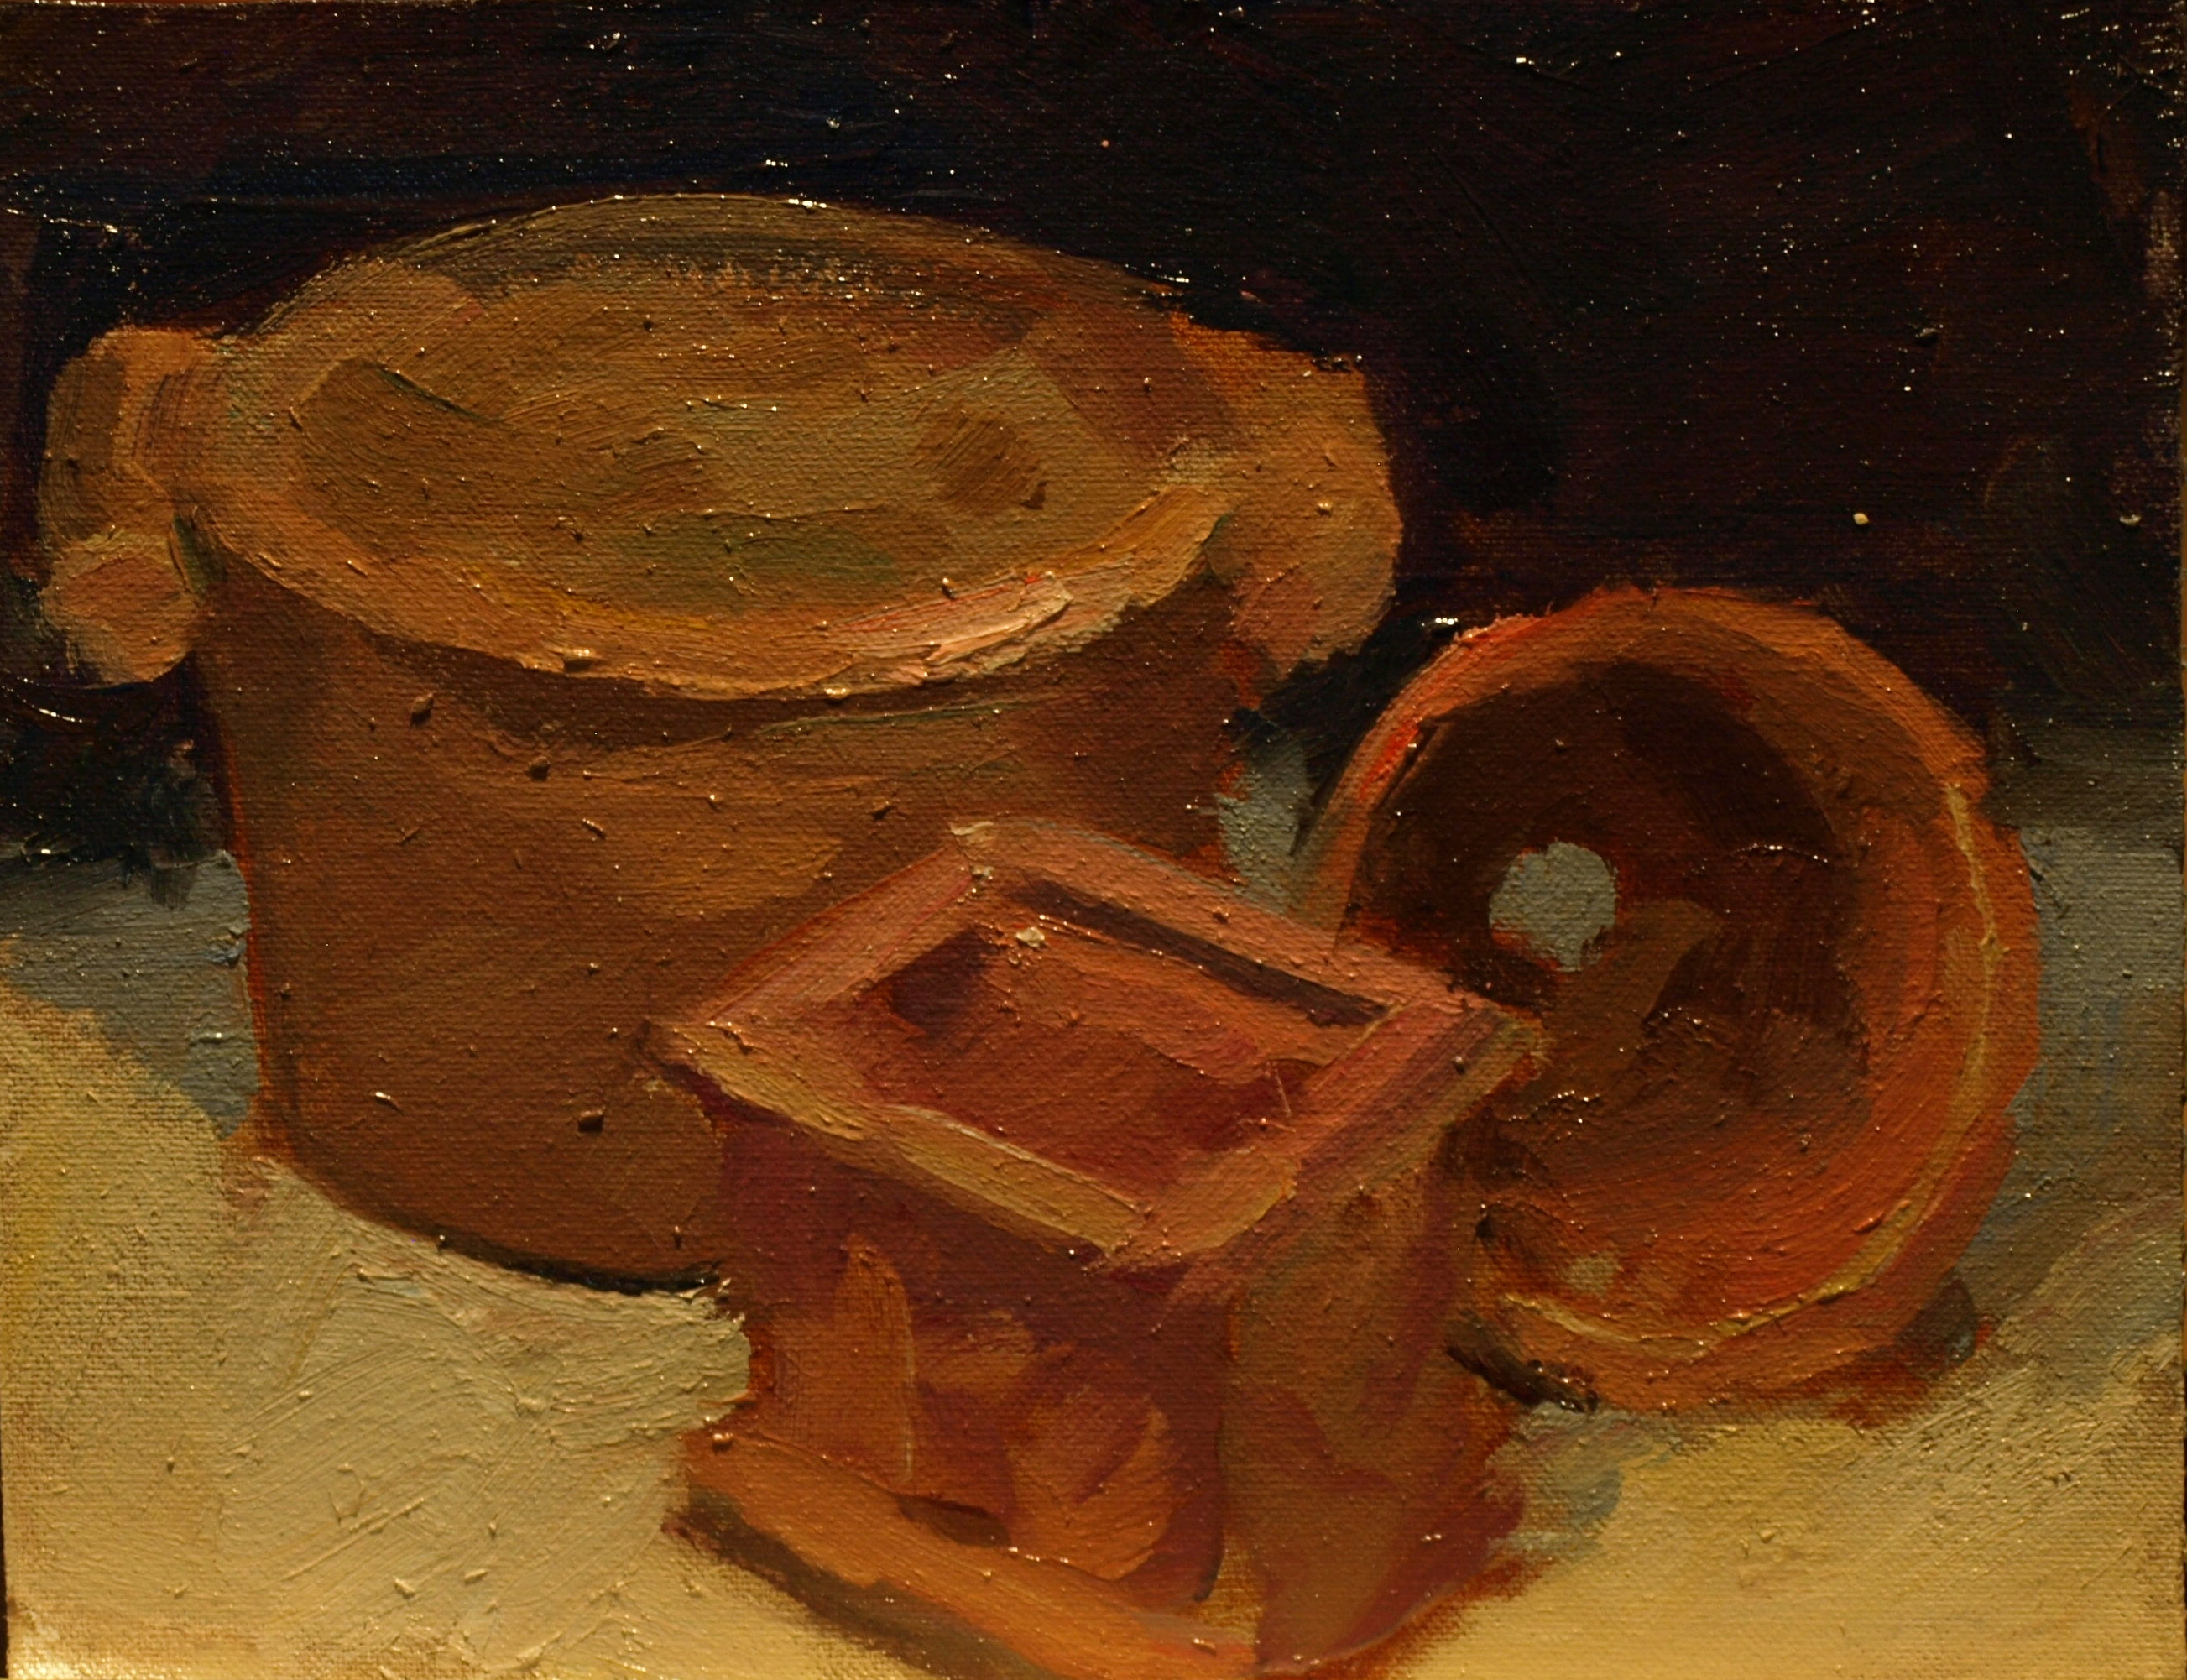 Terra Cotta, Oil on Canvas on Panel, 8 x 10 Inches, by Susan Grisell, $150